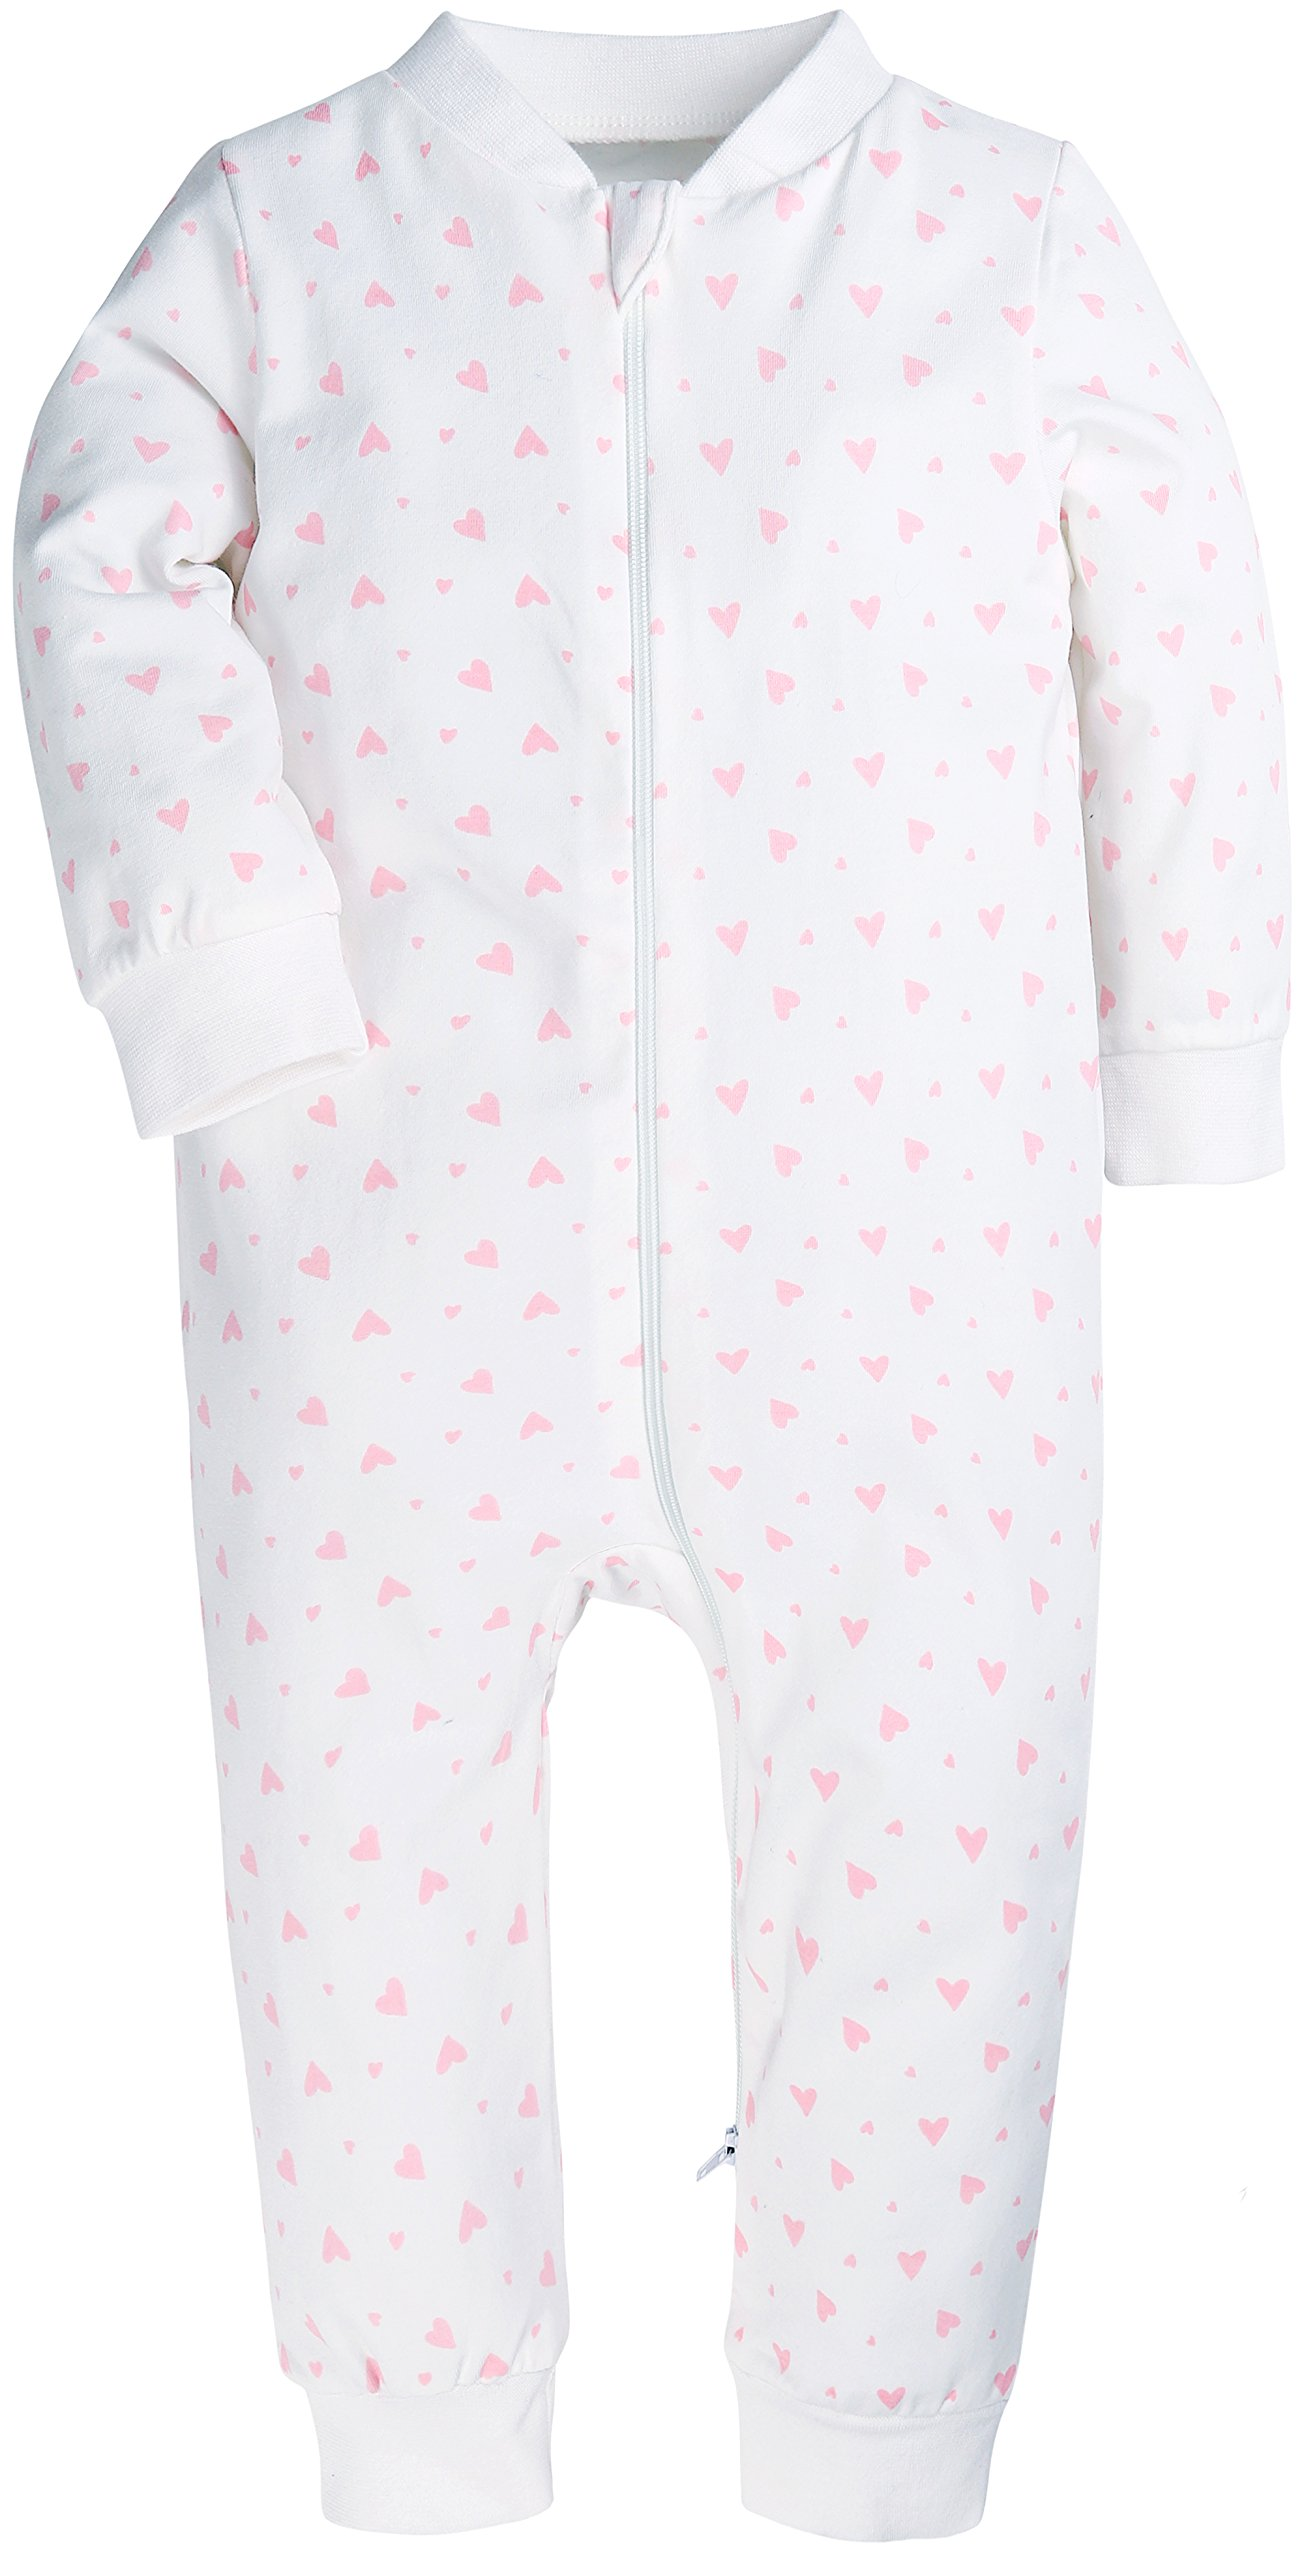 09df4a169448 Baby Boys and Girls Romper Onesies Footless Baby Jumpsuits Zipper up ...